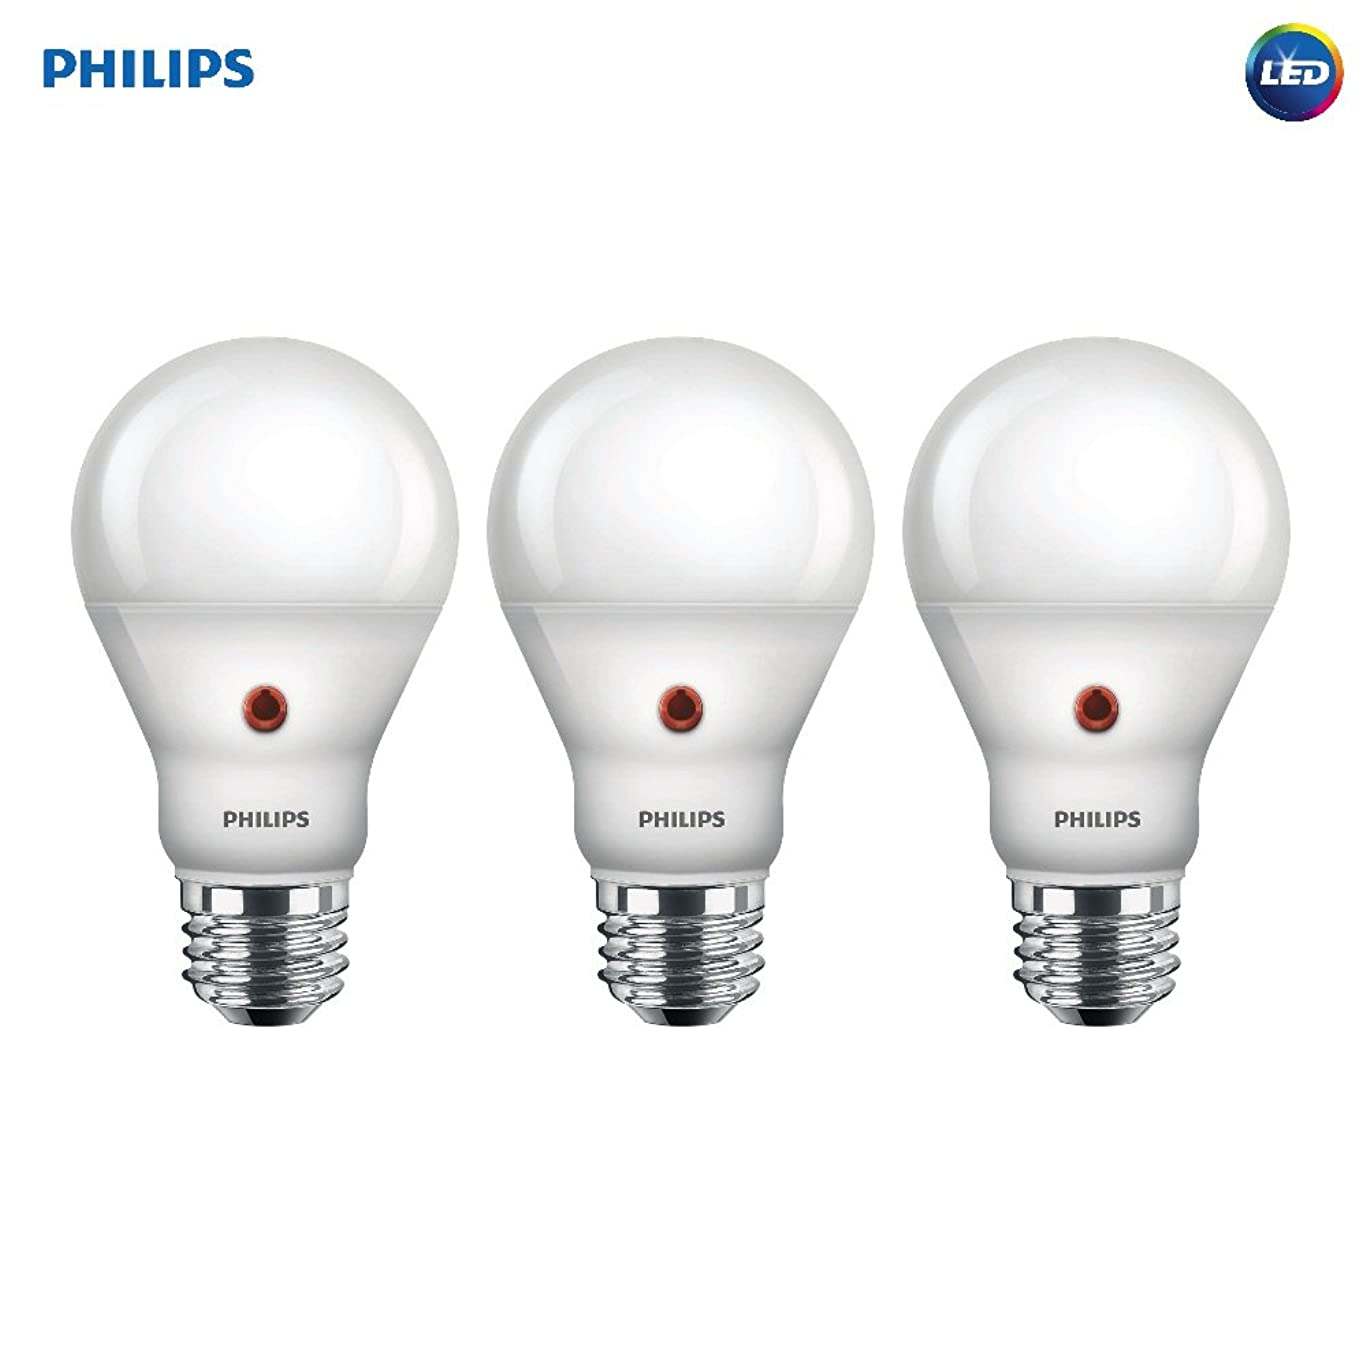 Philips LED Dusk-to-Dawn A19 Frosted Light Bulb: 800-Lumen, 2700-Kelvin, 8-Watt (60-Watt Equivalent), E26 Medium Screw Base, Soft White, 3-Pack